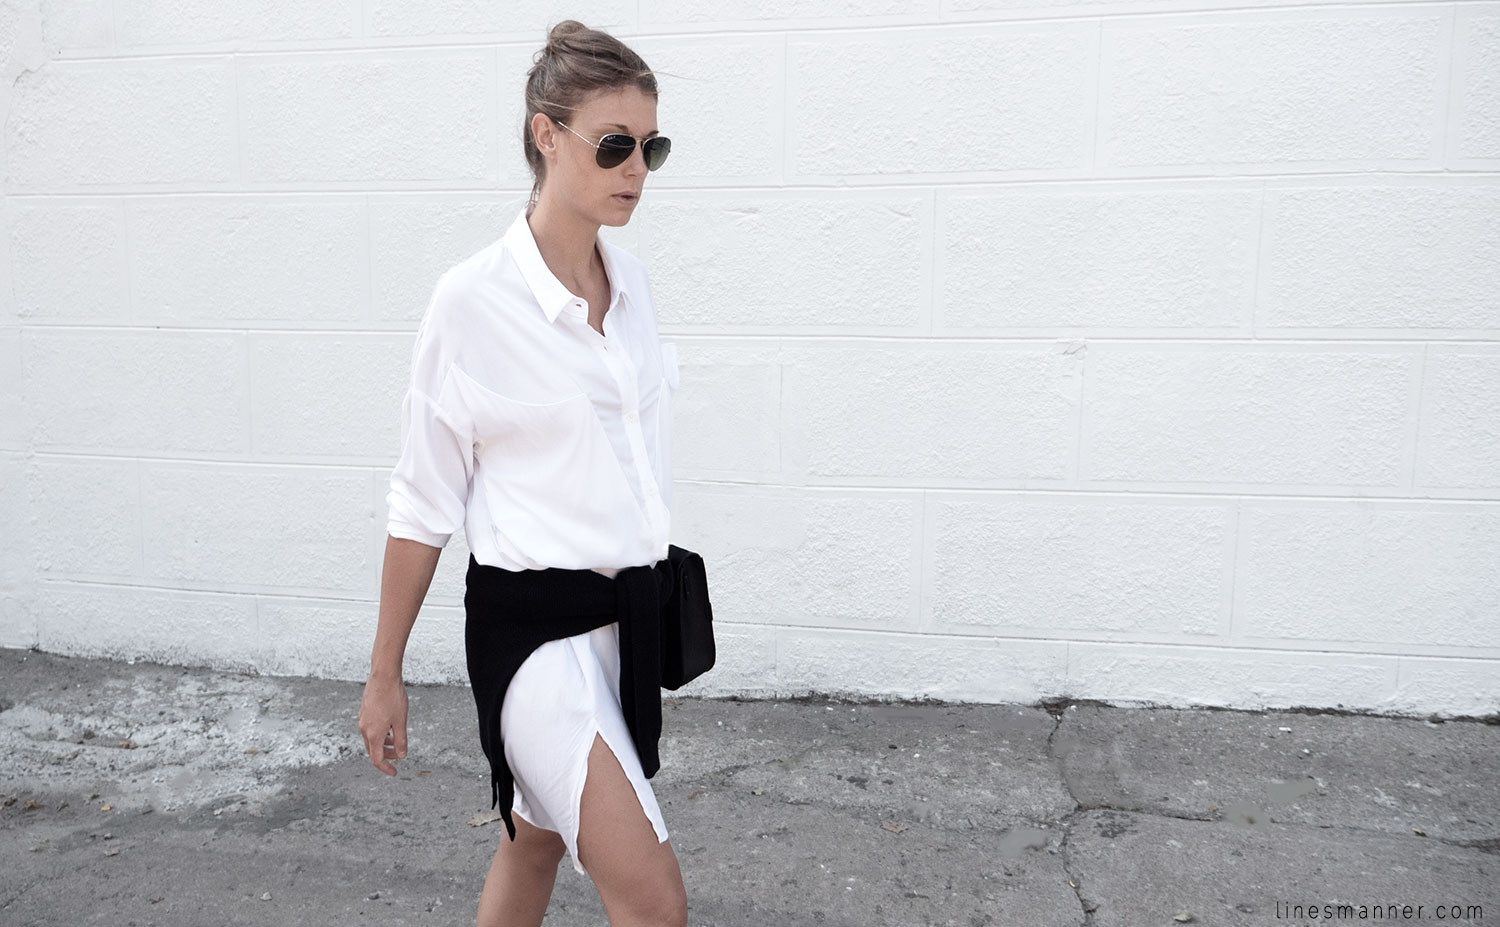 Lines-Manner-Whiteout-Fashion-Minimal-Clean-Fresh-Brigthly-All_White-Monochrome-Immaculate-Trend-Style-Sleek-Slouchy-Details-White_Shirt-Transeasonal-Dressing-Outfit-11